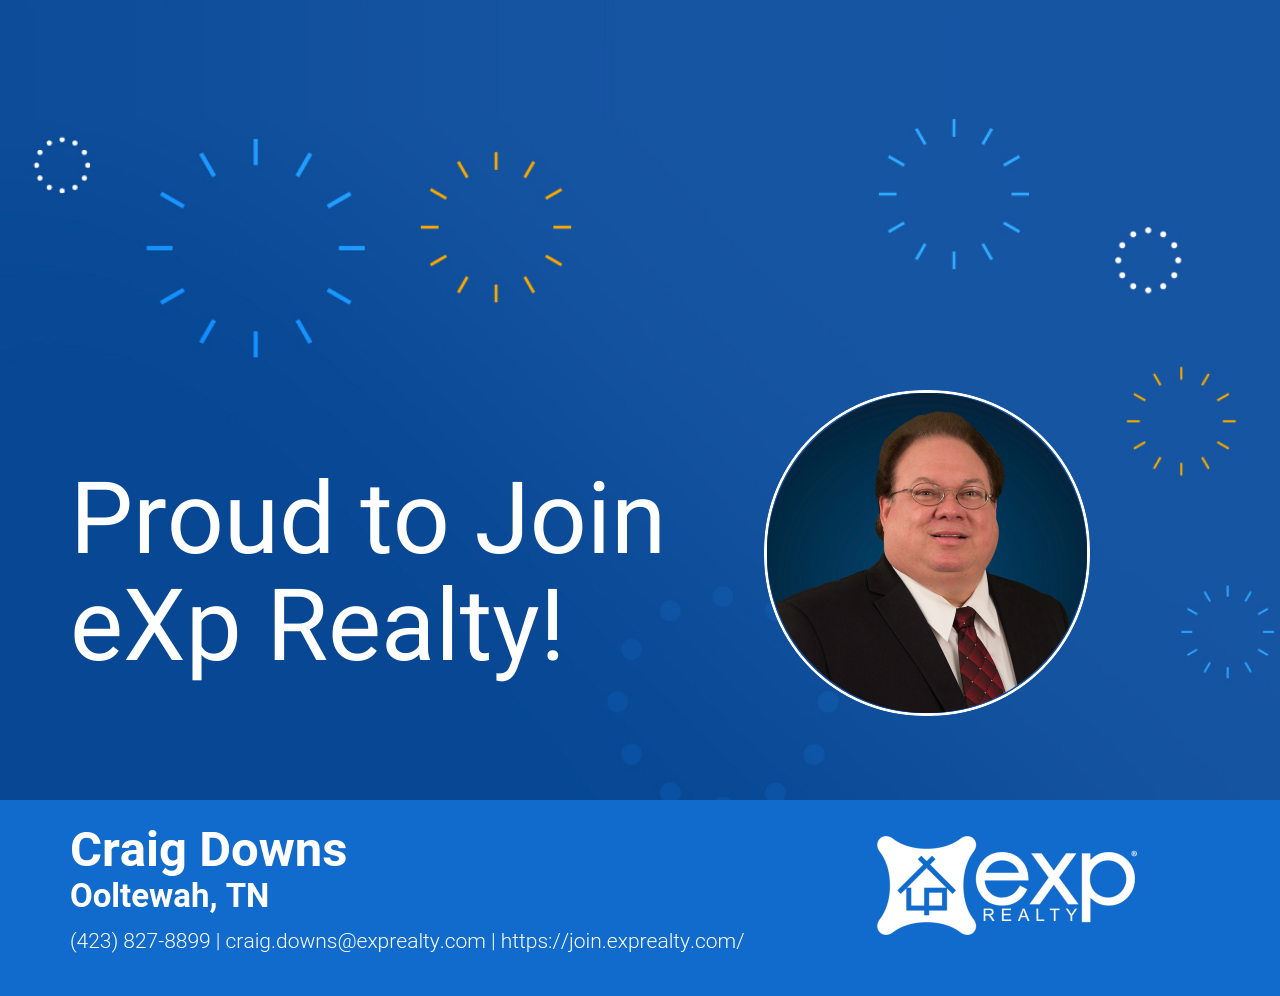 Darrell Craig Downs Joined eXp Realty!